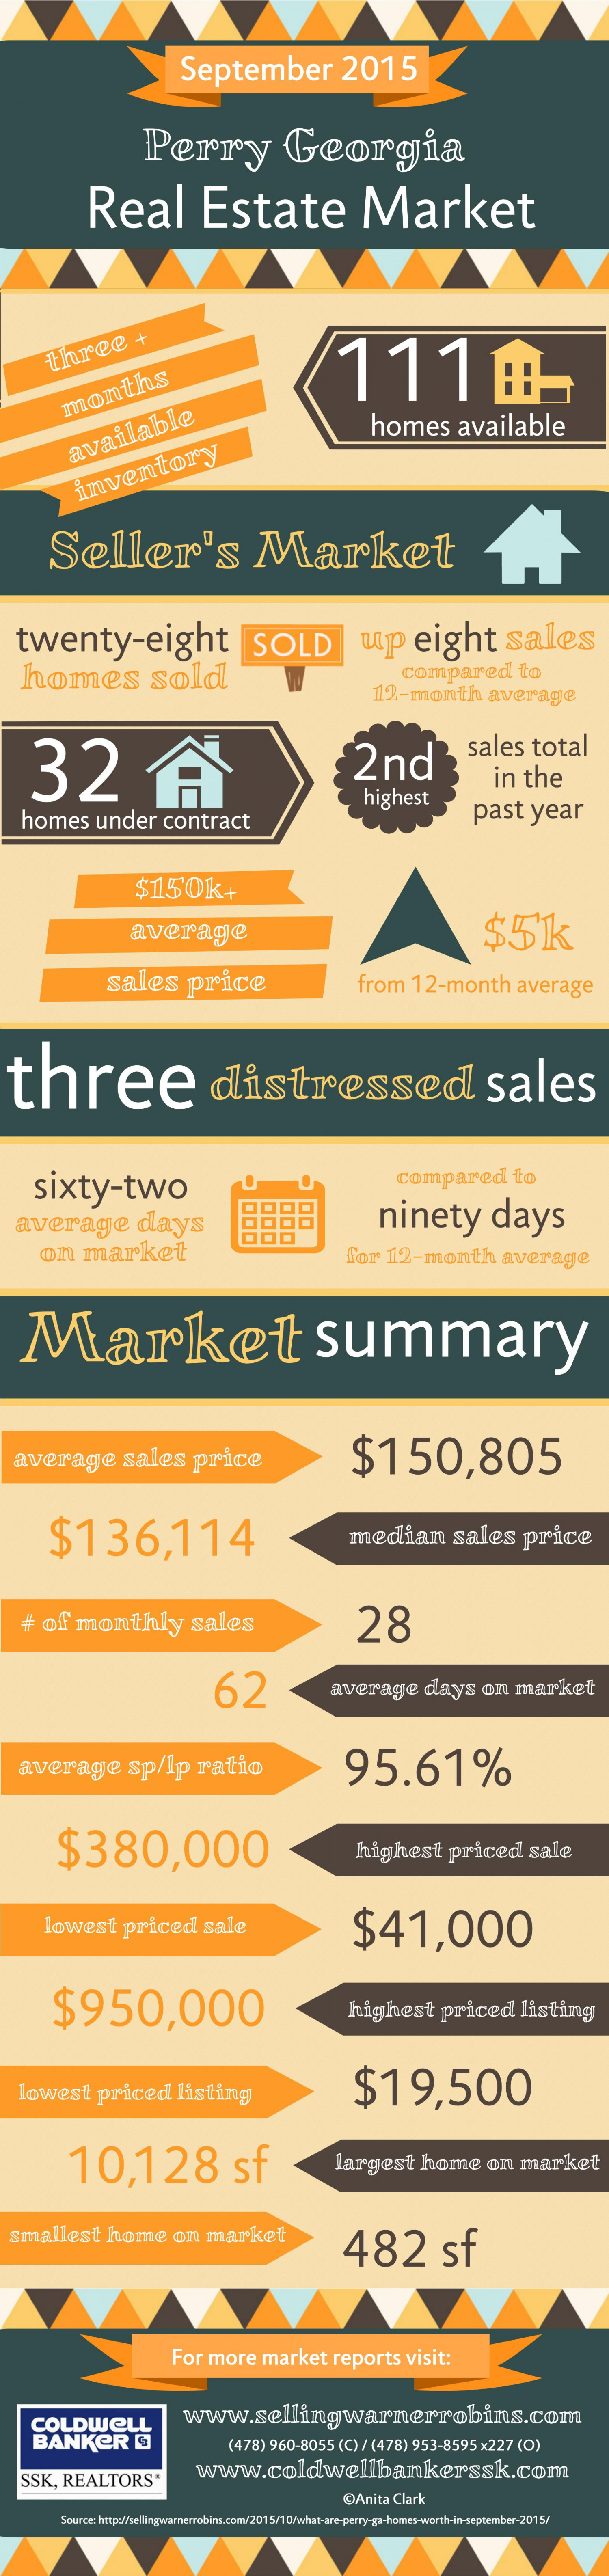 Perry GA Real Estate Market in September 2015 Infographic